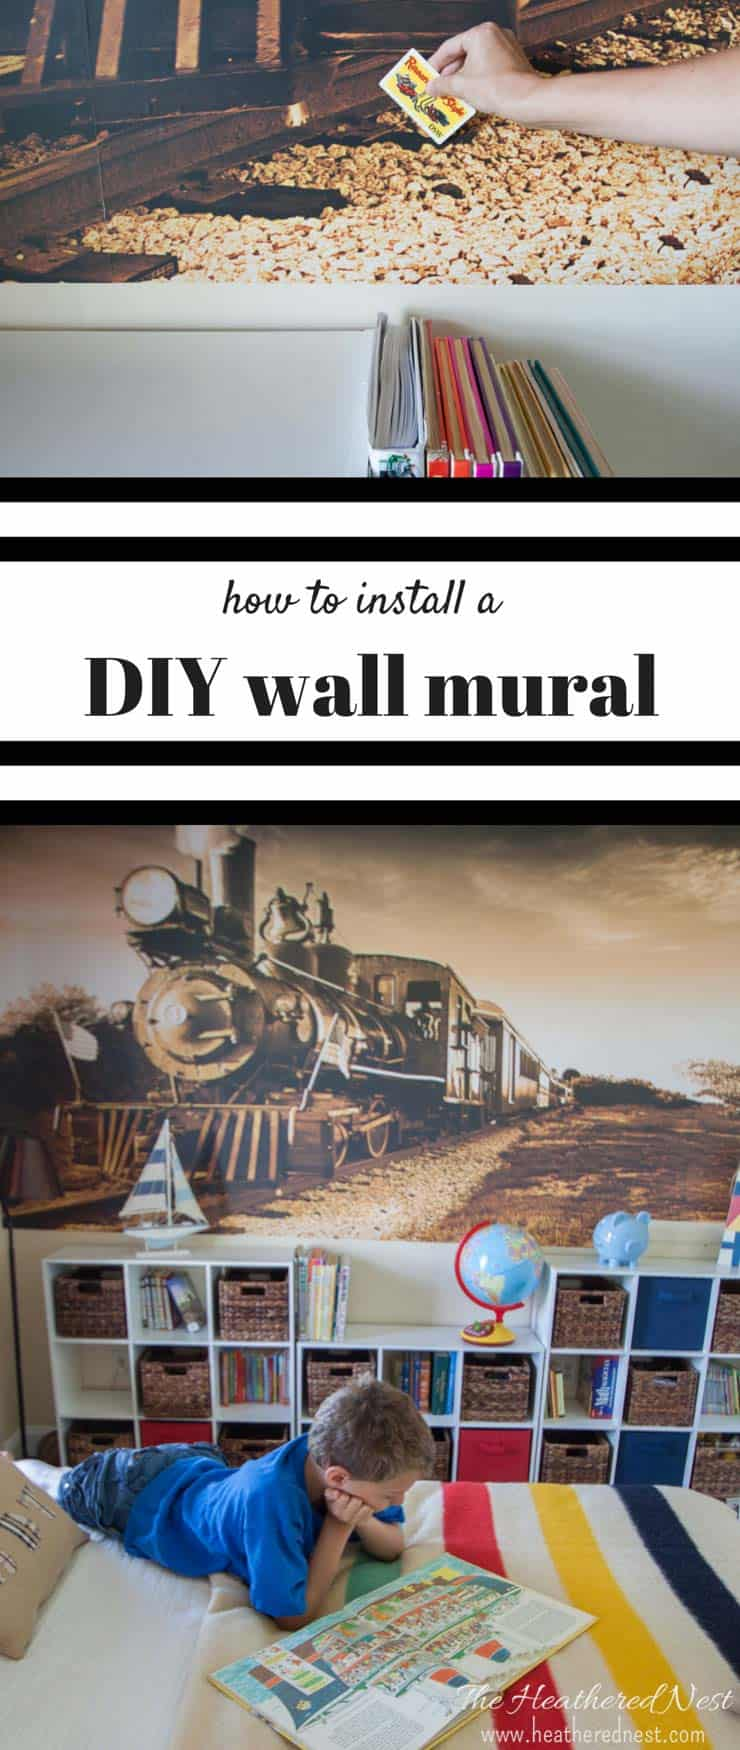 A vinyl wall mural is a great way to add a lot of bang for not a lot of buck! We'll show you how to install this DIY wall mural. And the best part is, it's also easy to remove! No glue/wallpaper paste or damage to your walls!! from www.heatherednest.com